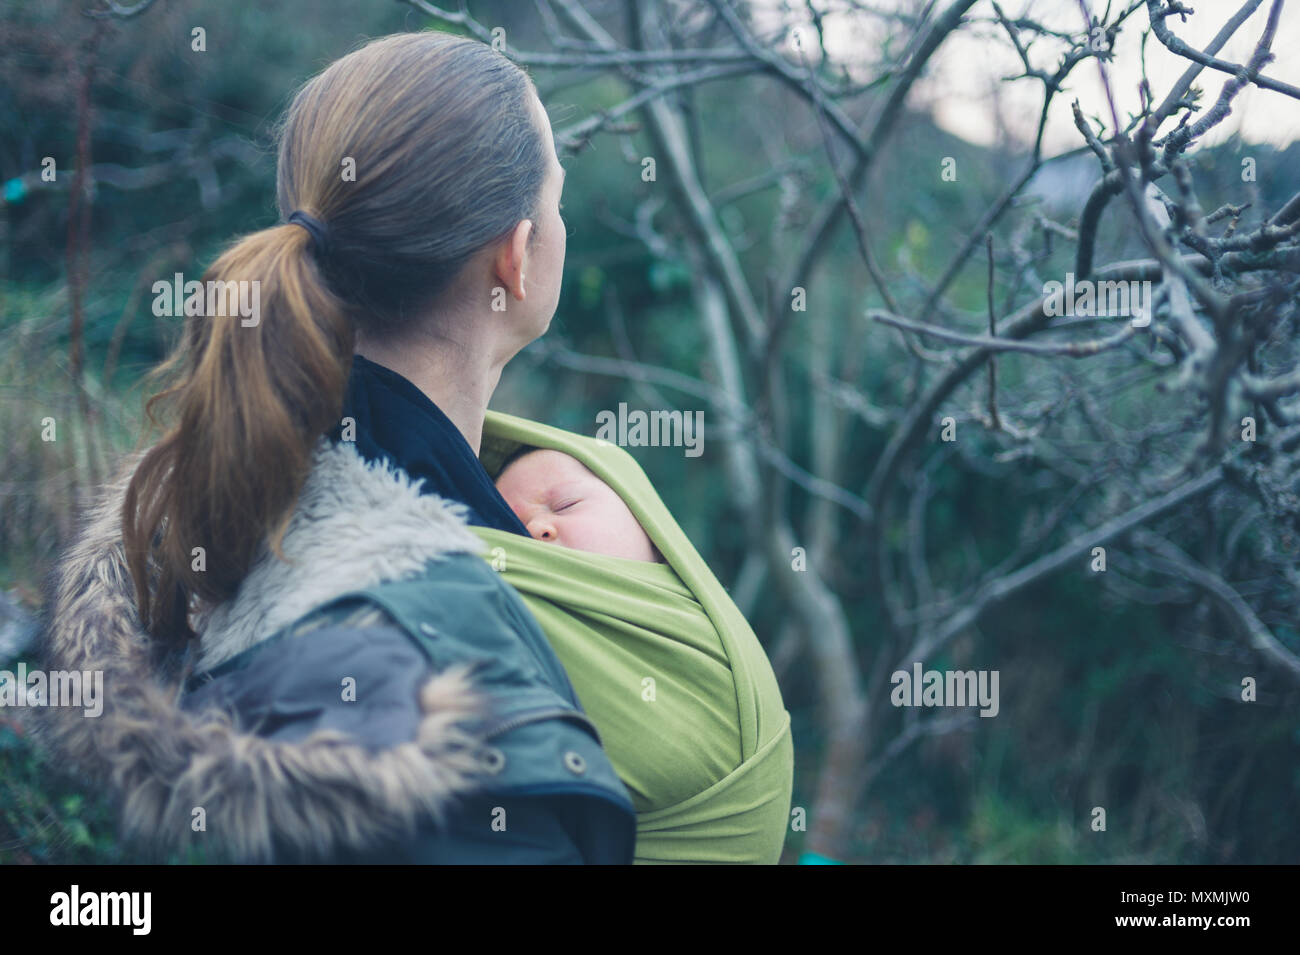 A young mother with her baby in a sling is walking in nature - Stock Image